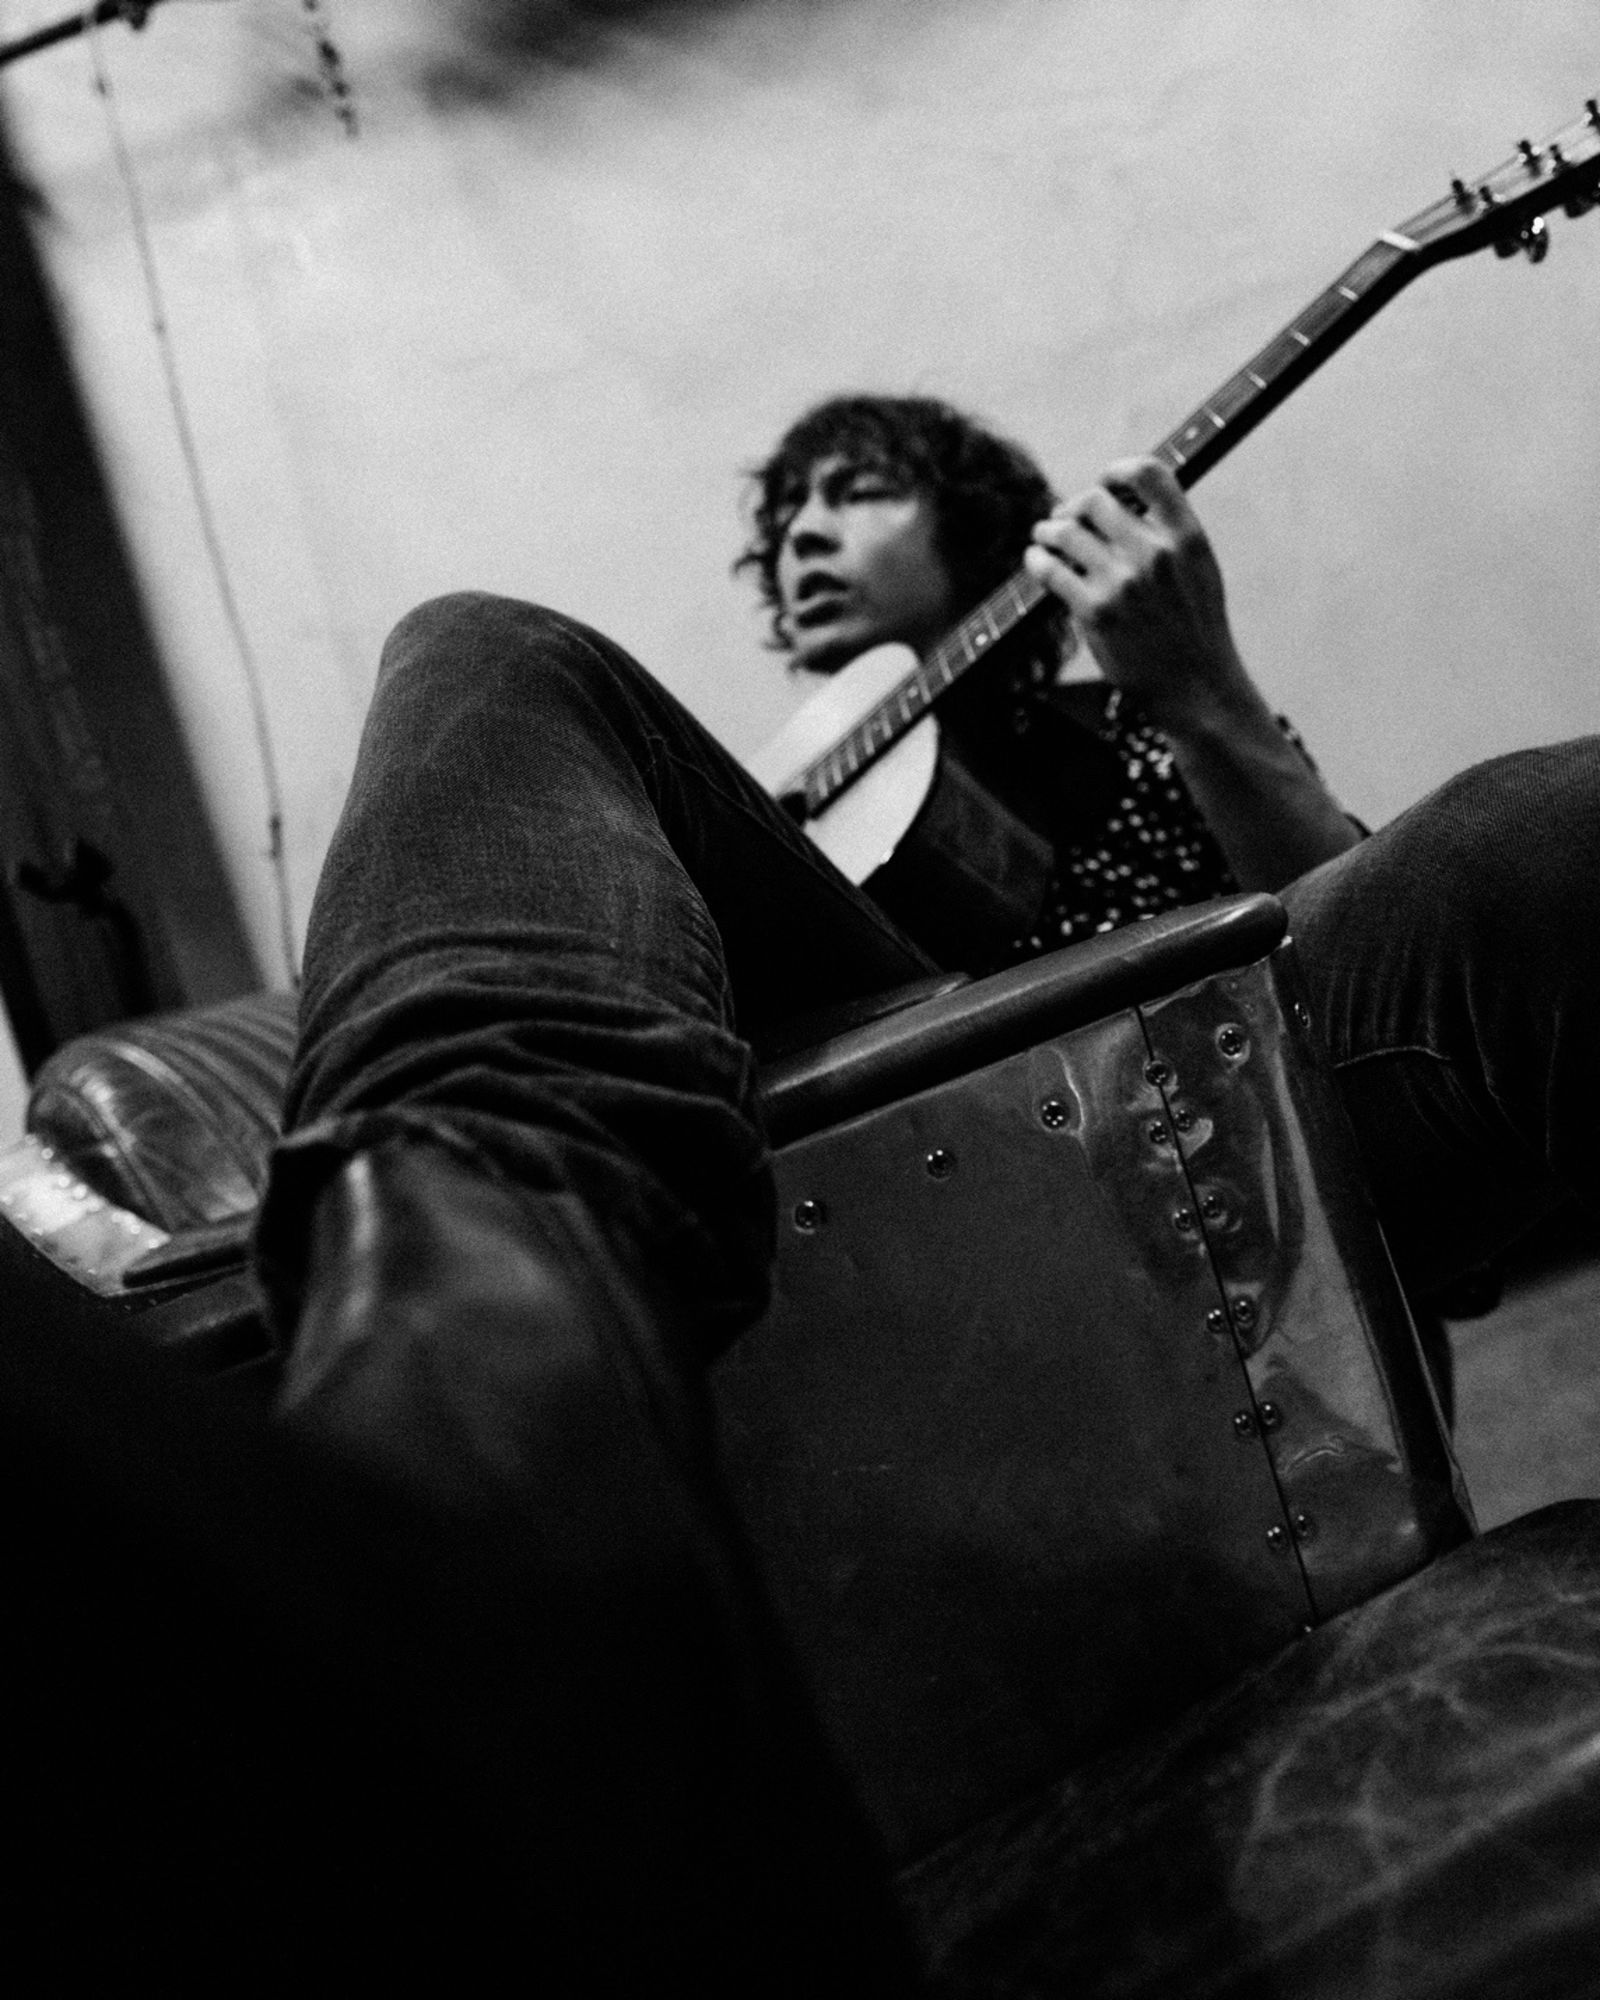 Black and white image of Barns Courtney sitting on a couch and playing on an accoustic guitar.